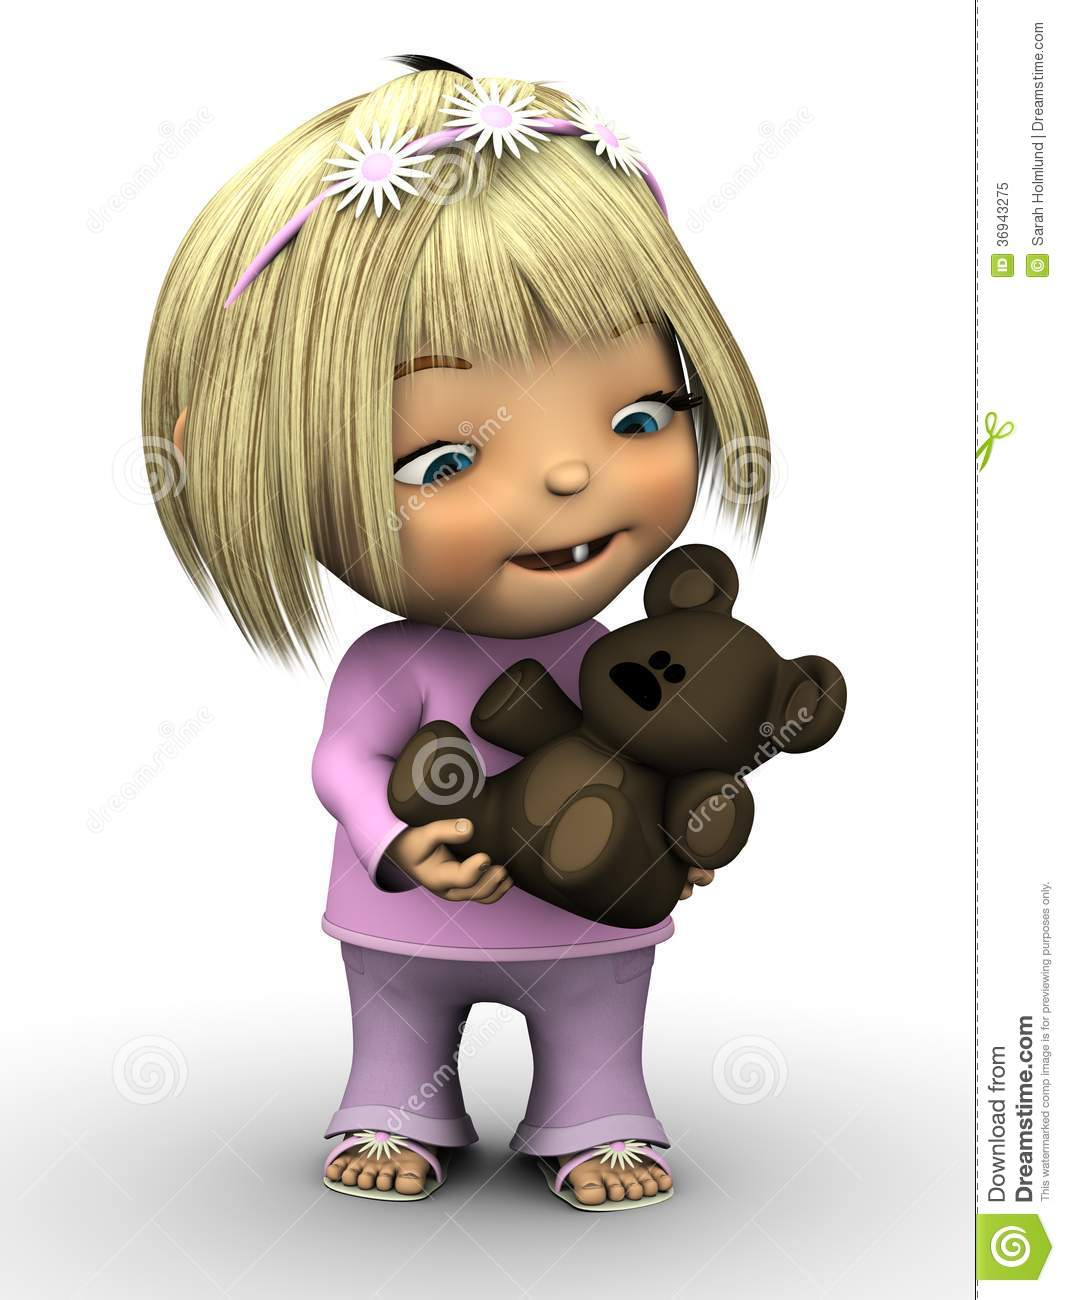 cute toddler girl holding teddy bear royalty free stock photo   image